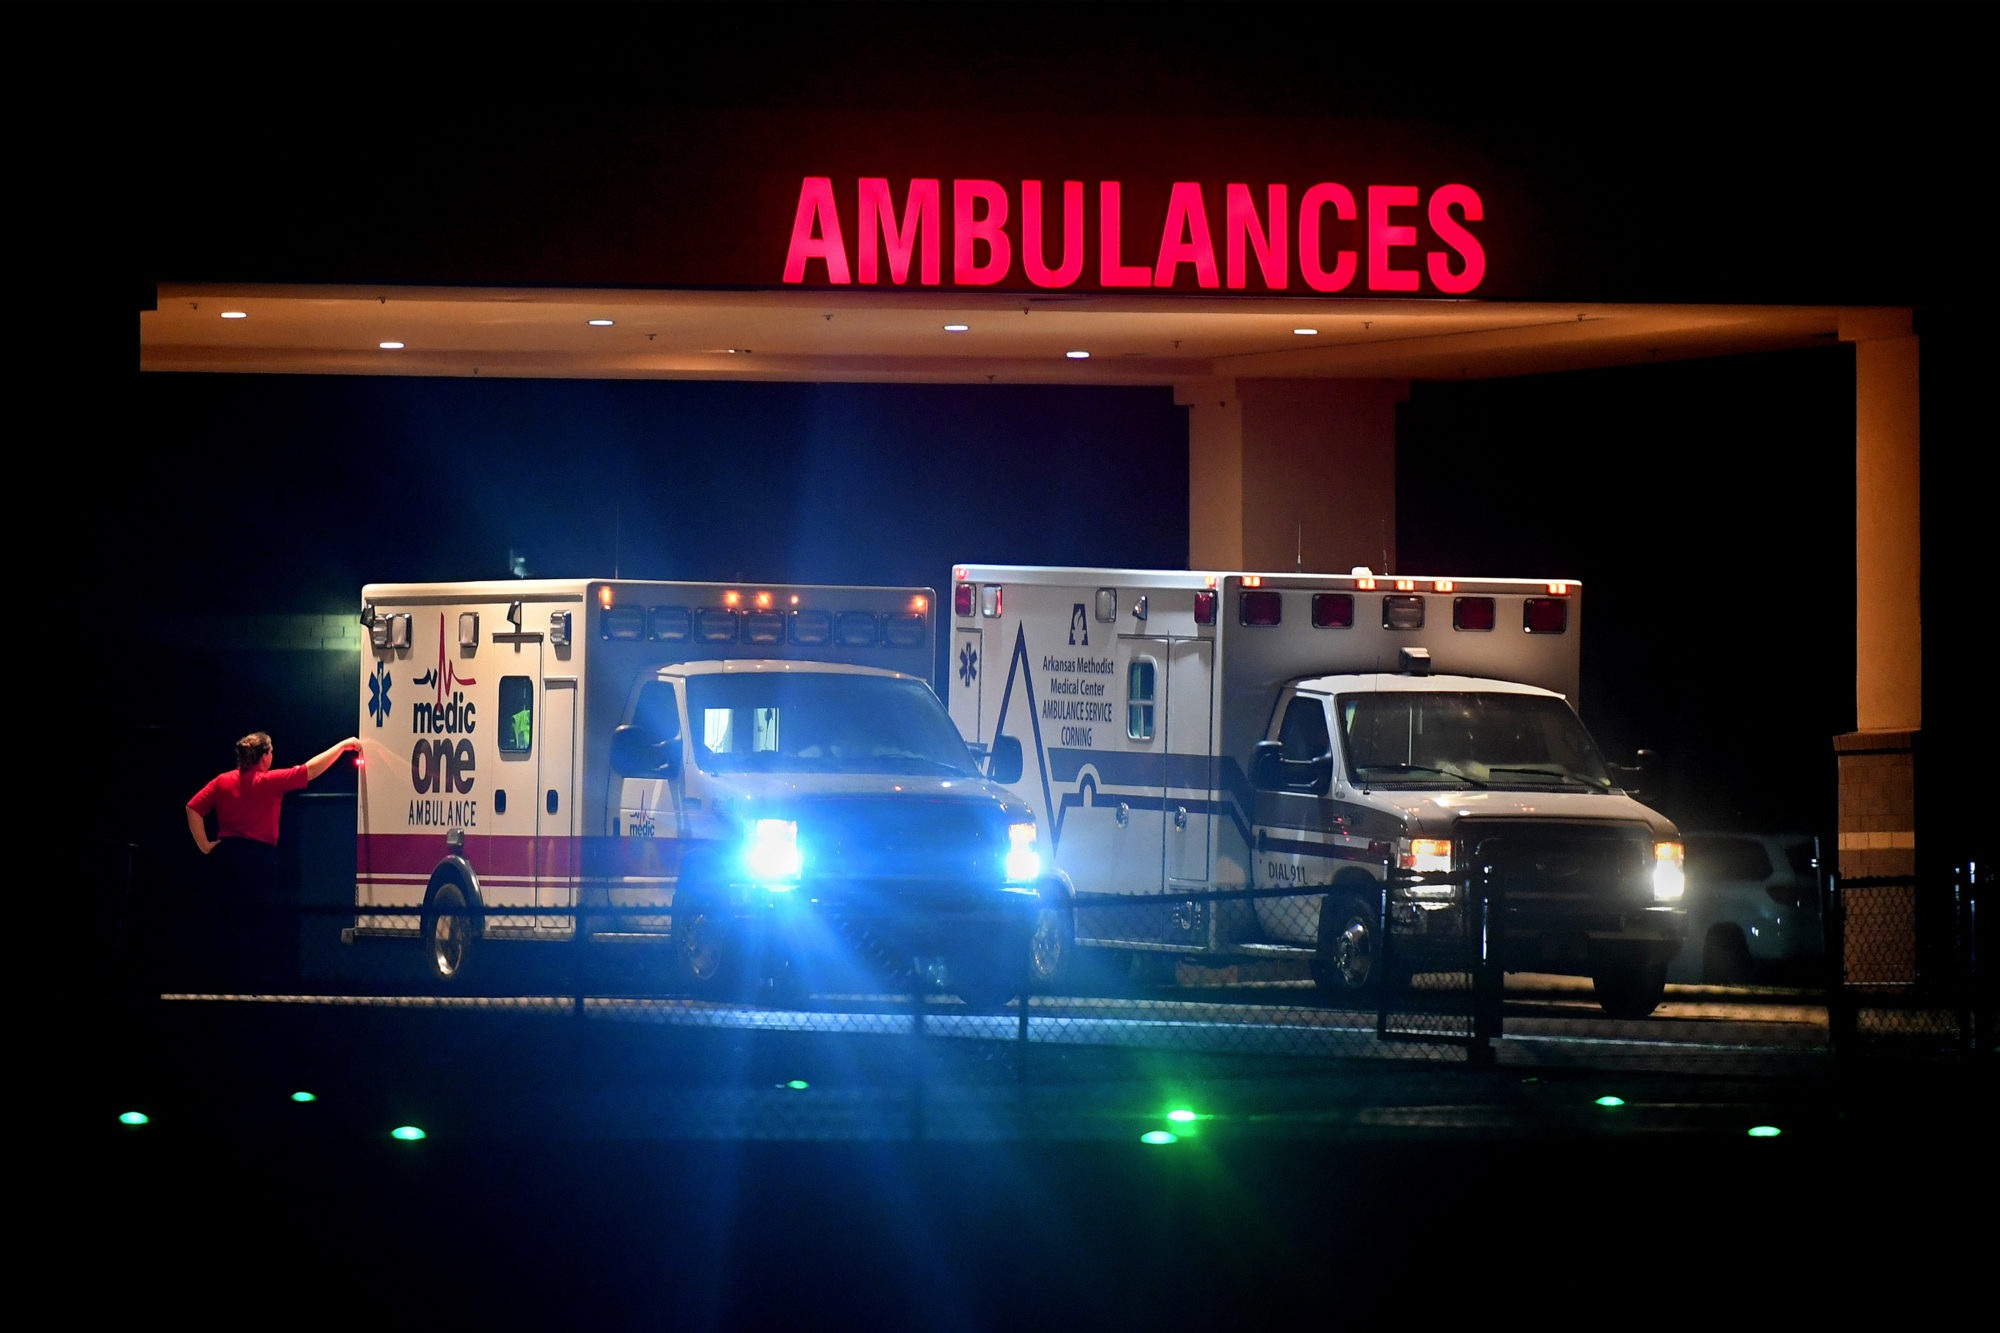 Be Prepared: Find the ER You Want to Go to Before an Emergency Happens